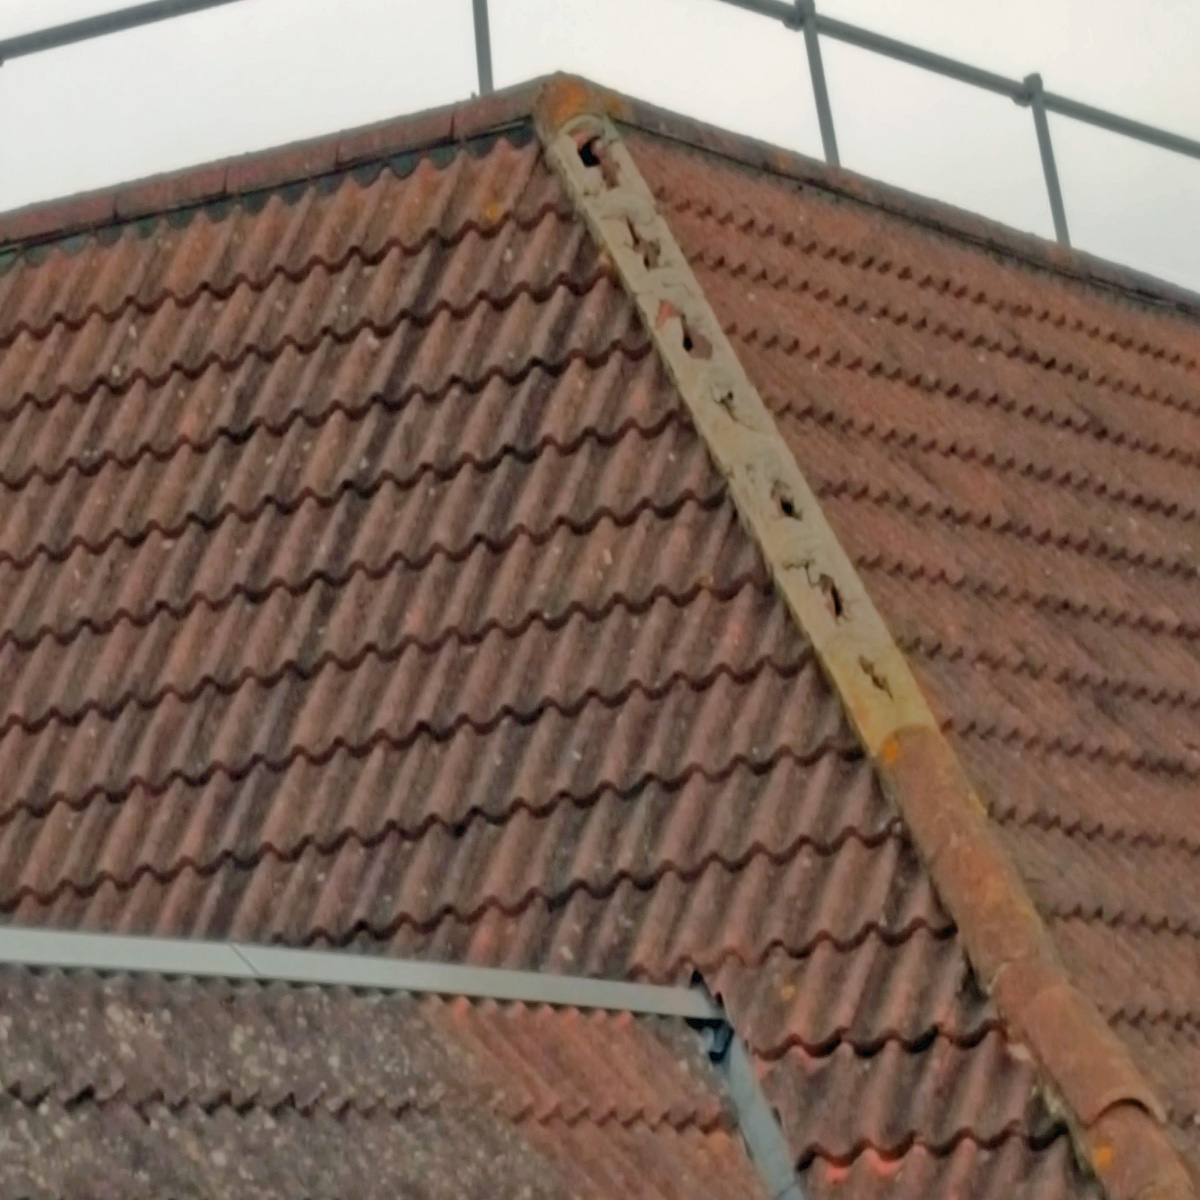 Blog From Mortar Bedding To Dry Fix Roofing What Price